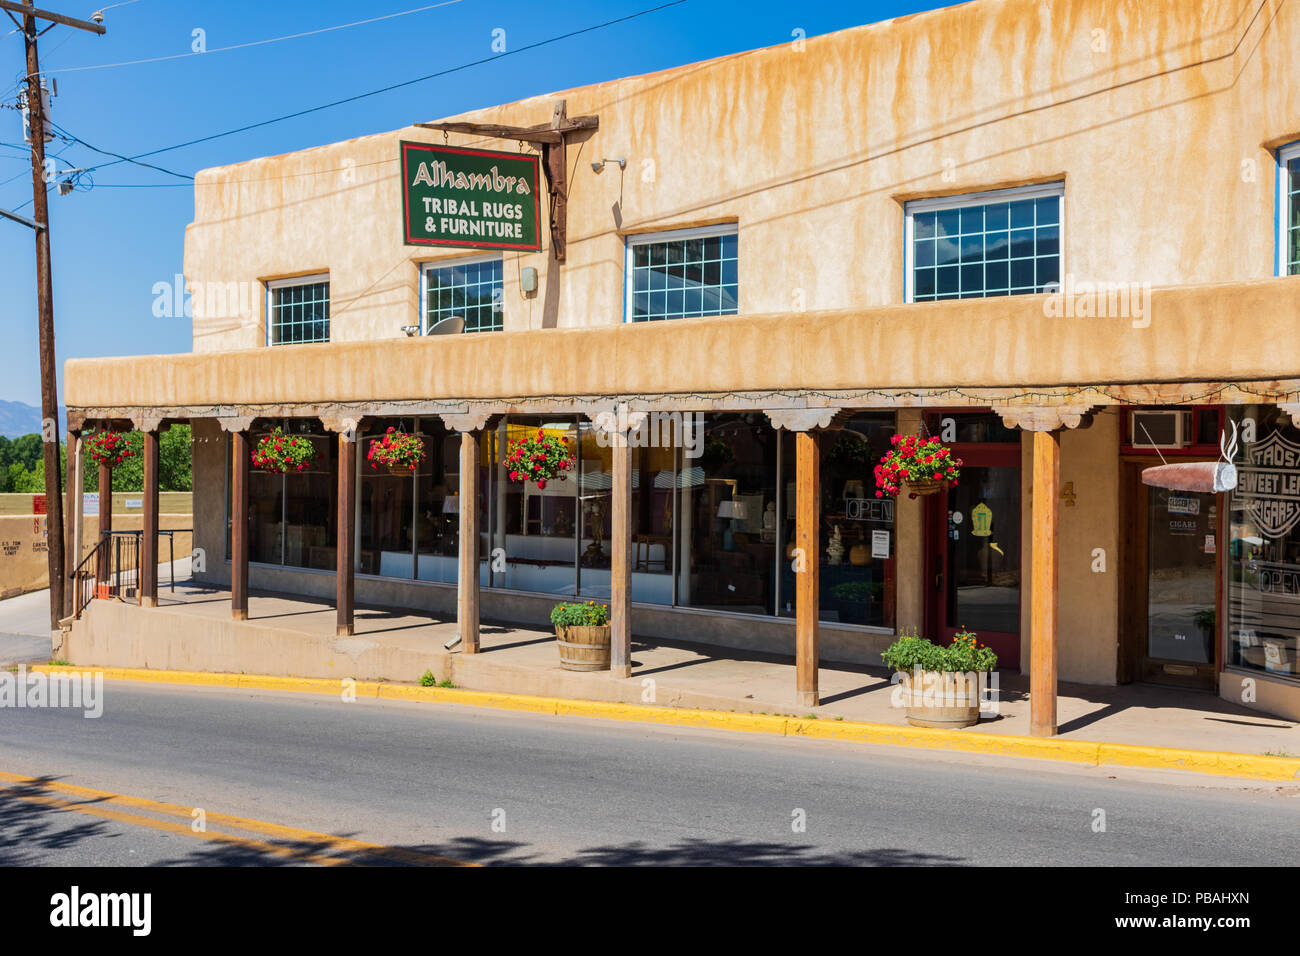 TAOS, NM, USA-8 JULY 18: Alhambra Tribal Rugs & Furniture is on the